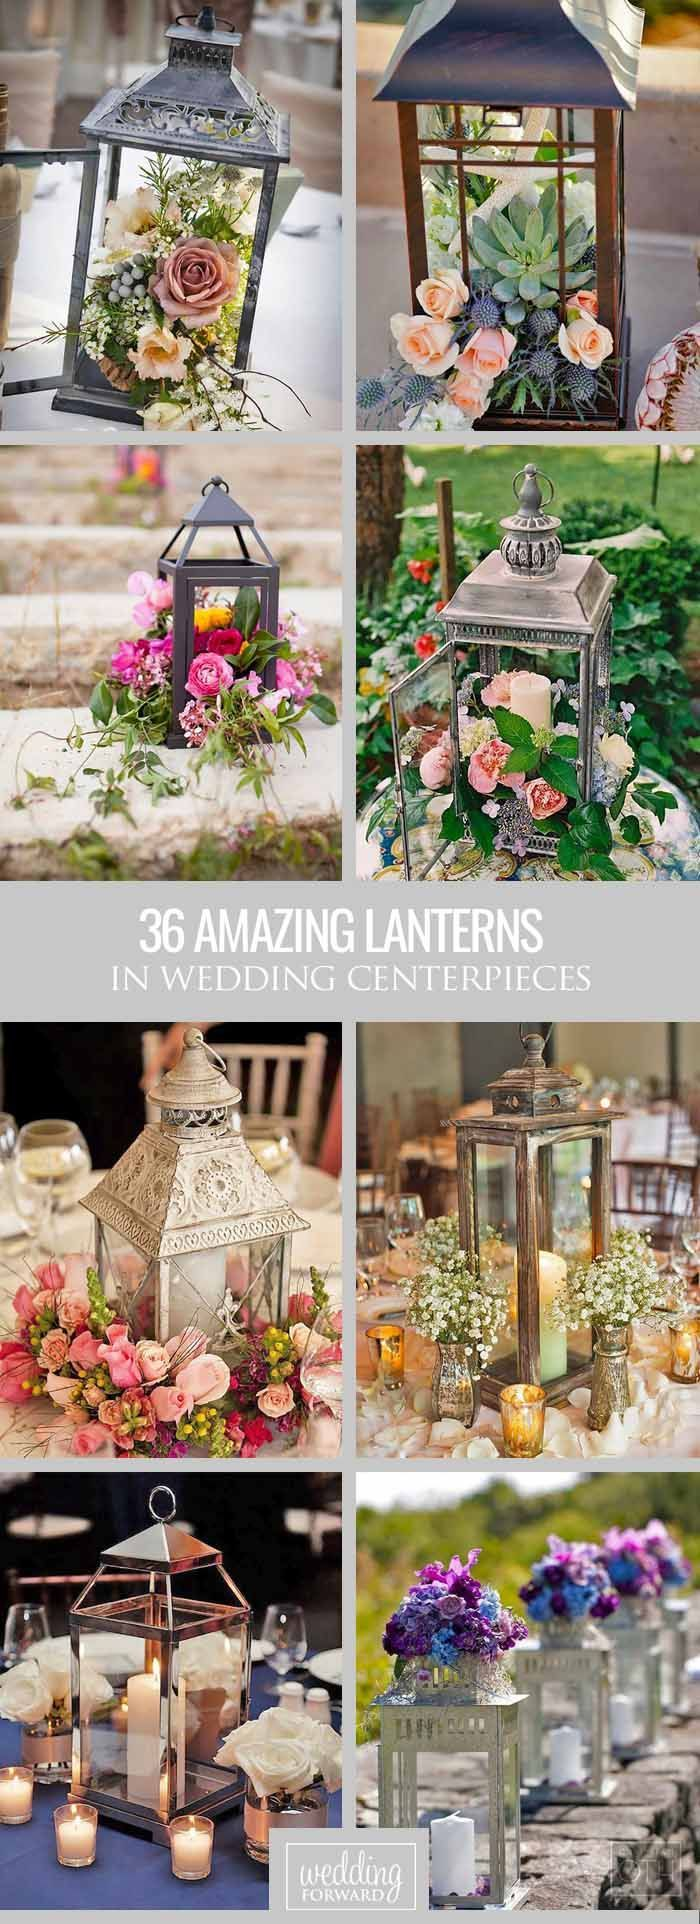 36 Amazing Lantern Wedding Centerpiece Ideas We Propose To Consider With